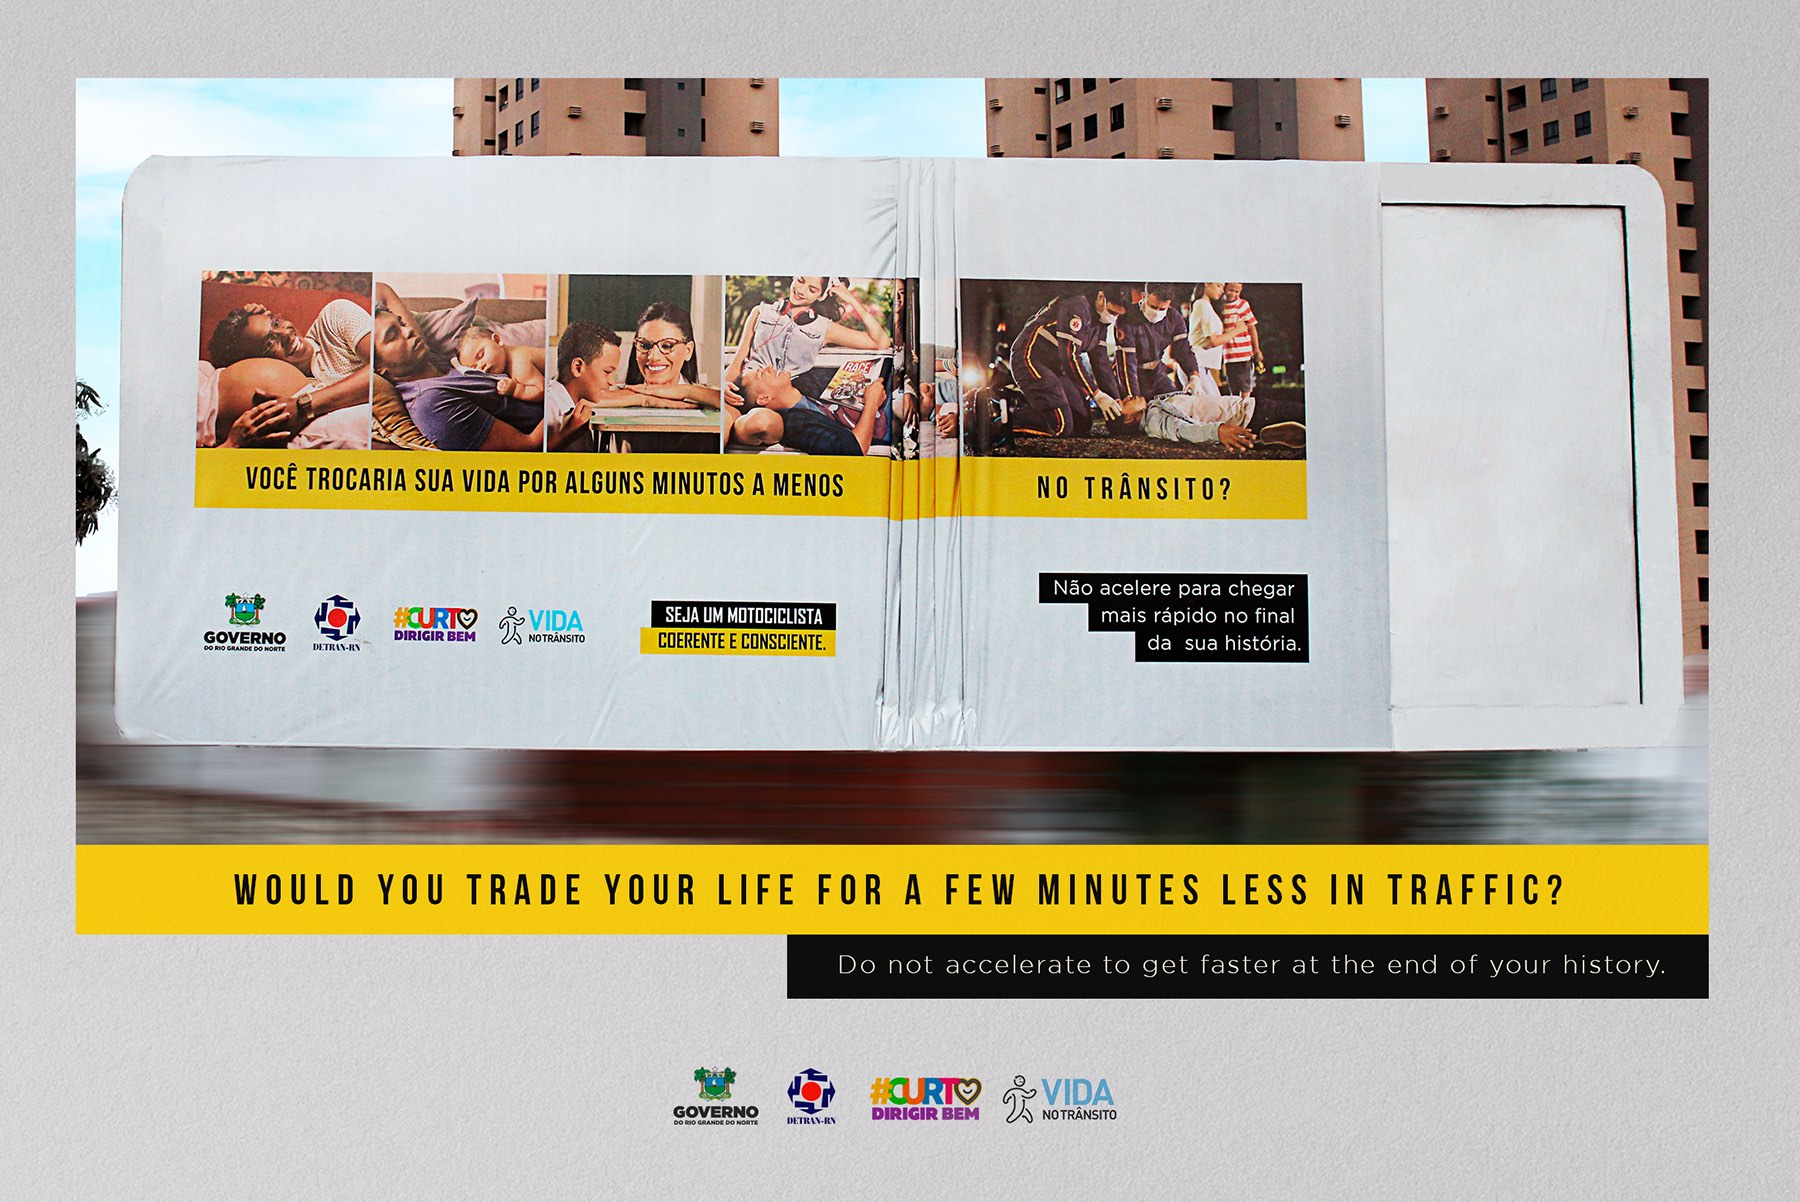 Would you trade your life for a few minutes less in traffic? – 'Short life' campaign by Detran-RN